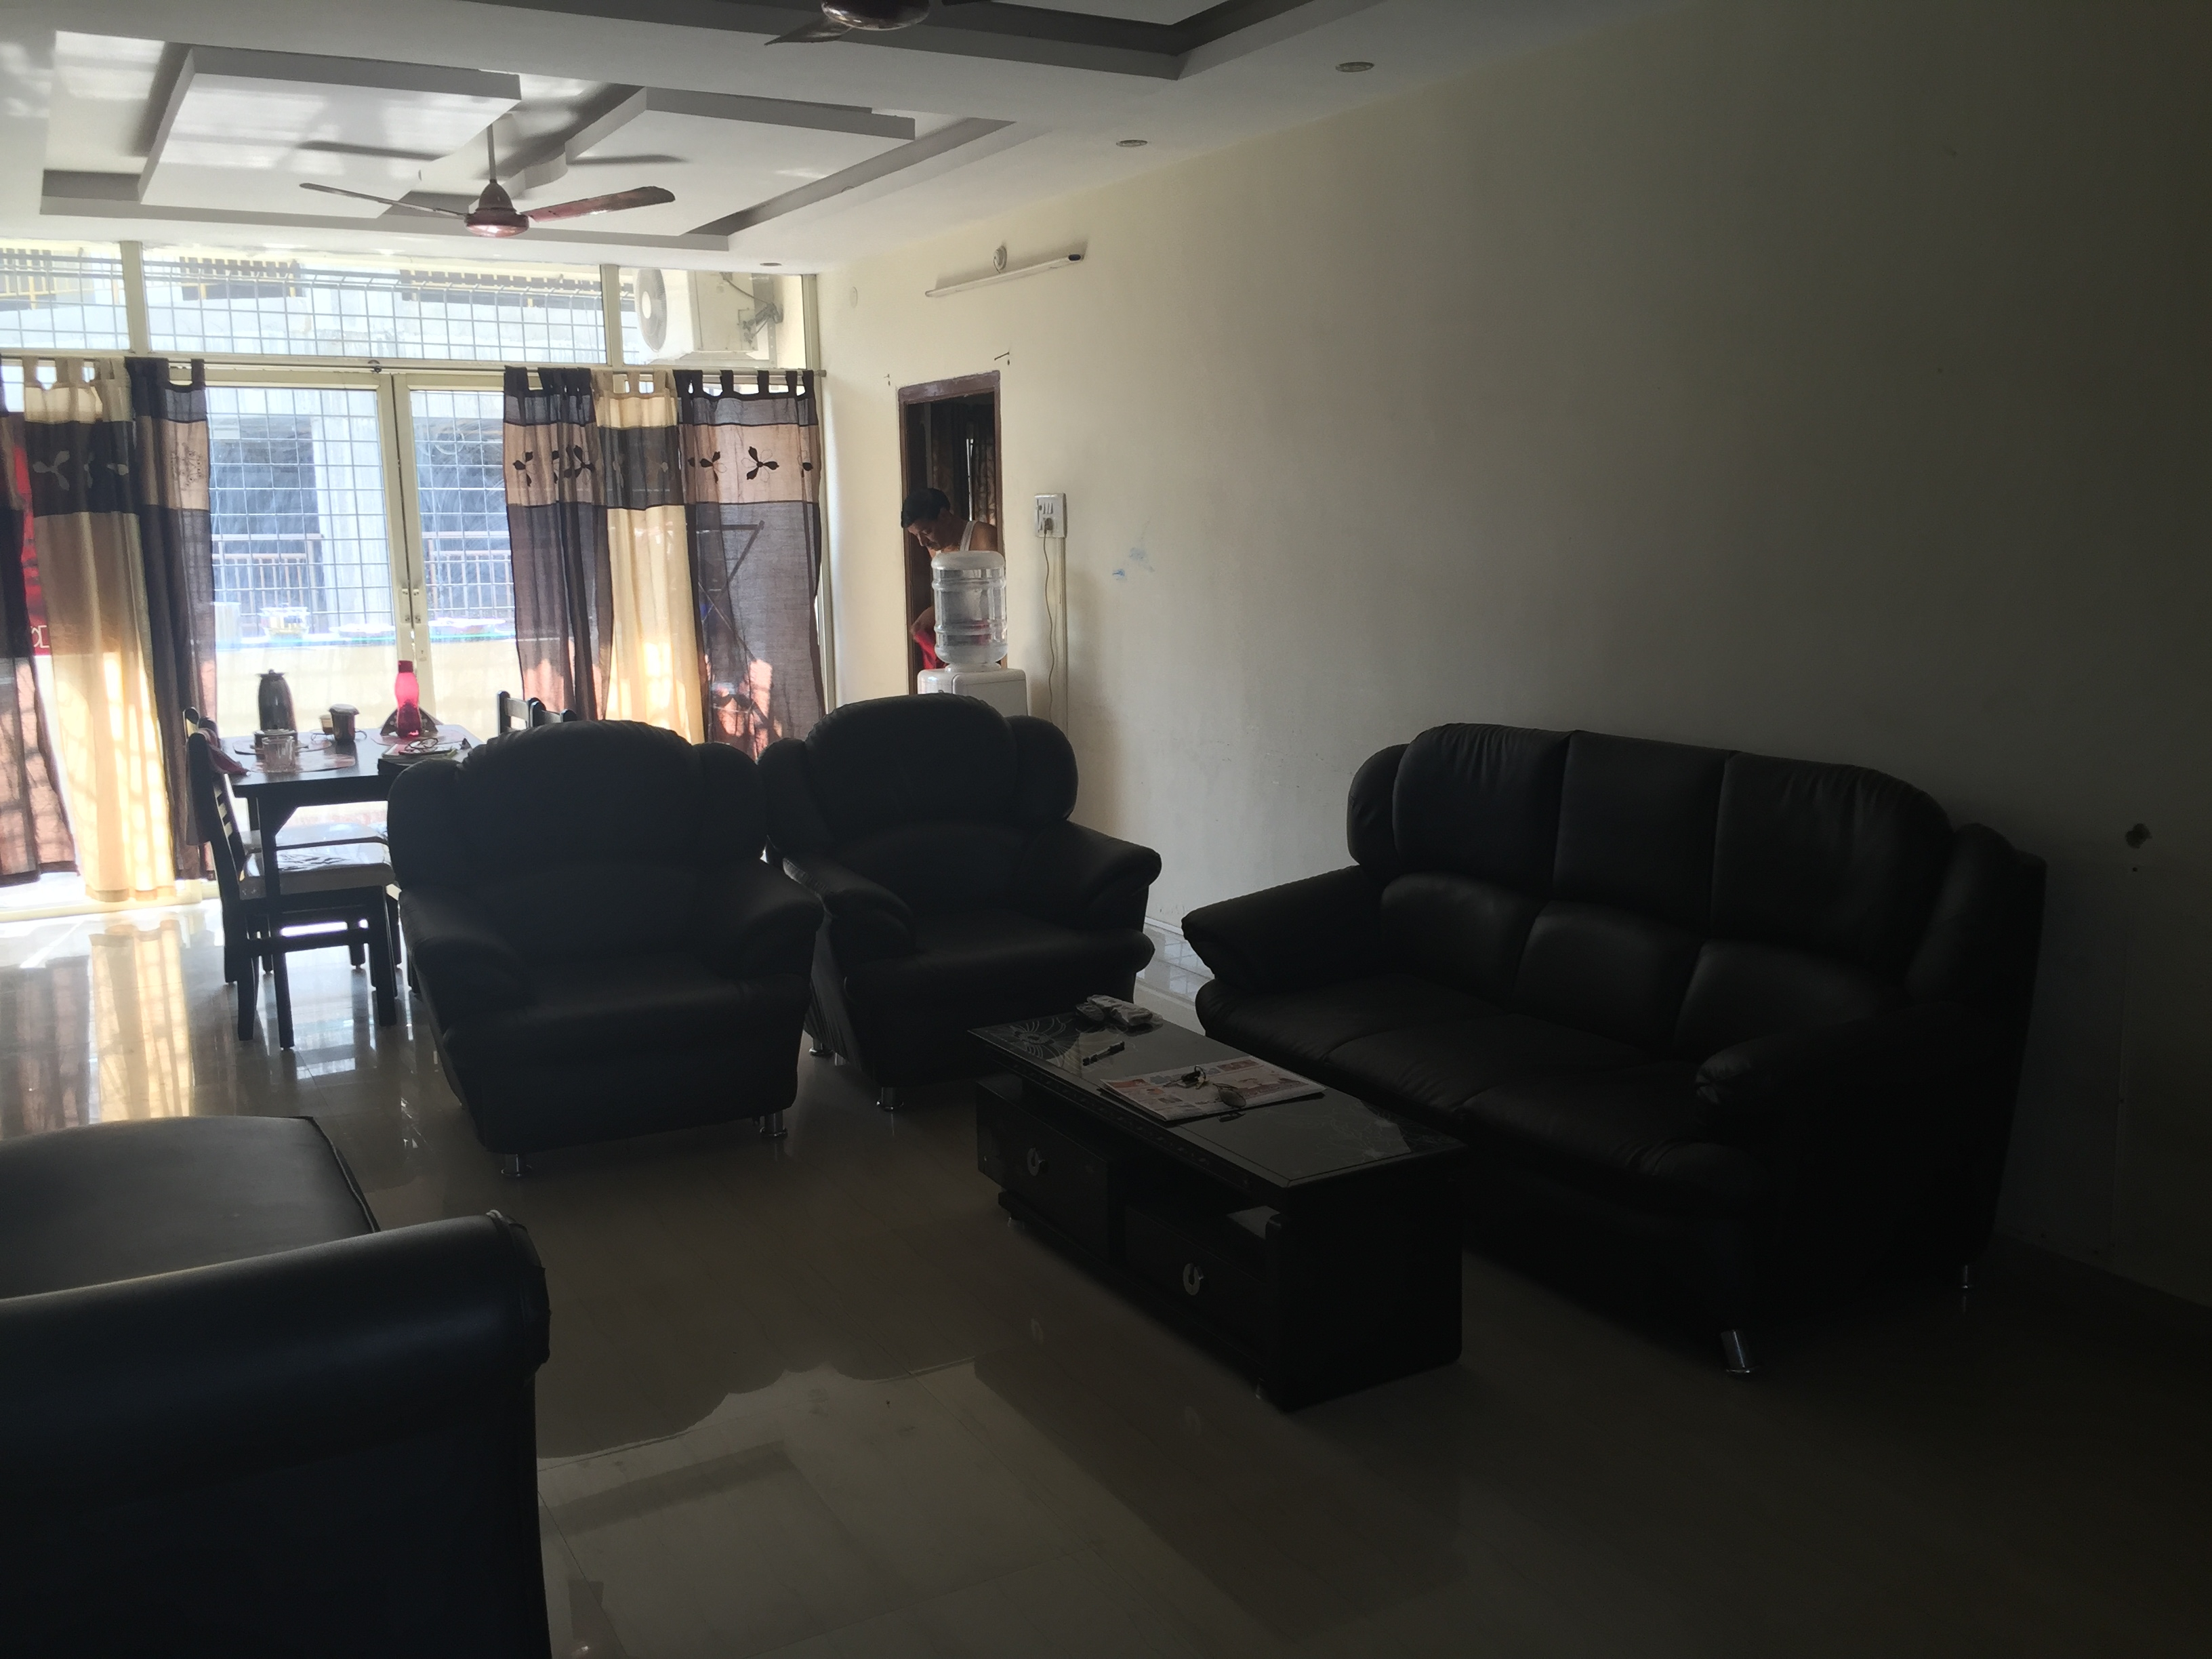 Looking for 1 roomie (Girl or Boy) to occupy 1 fully furnished Bedroom in a spacious 3 BHK apartment (Single Occupancy/Bedroom) for residence purpose at In Orbit Mall, Hi-Tech city. (Available From 14 April 2018) Room Details • For Single Occupancy/Bedroo